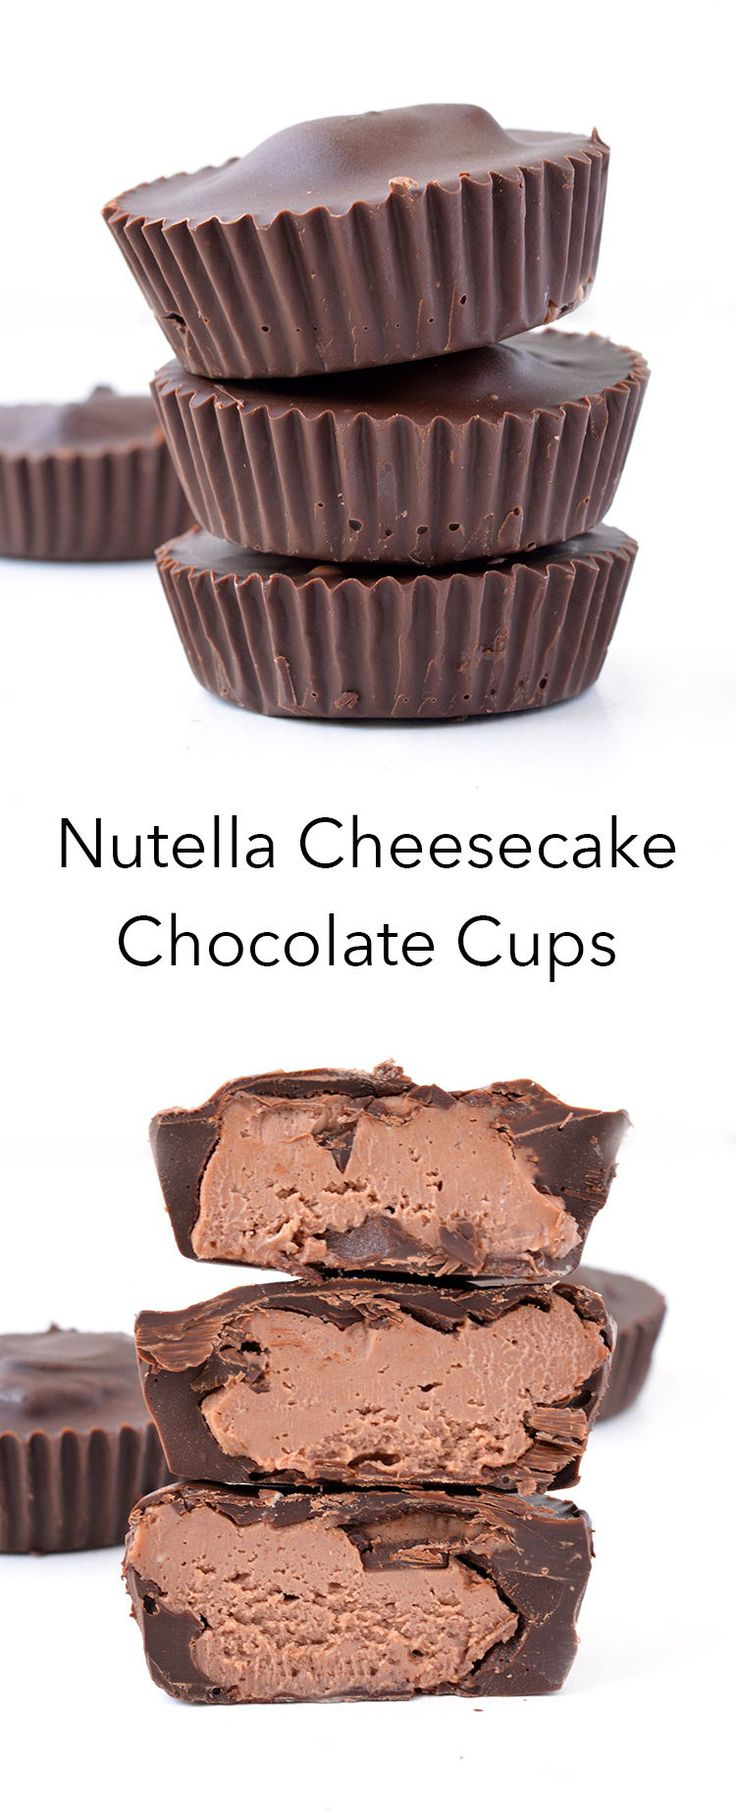 Nutella Cheesecake Chocolate Cups Mary Ashenfelter